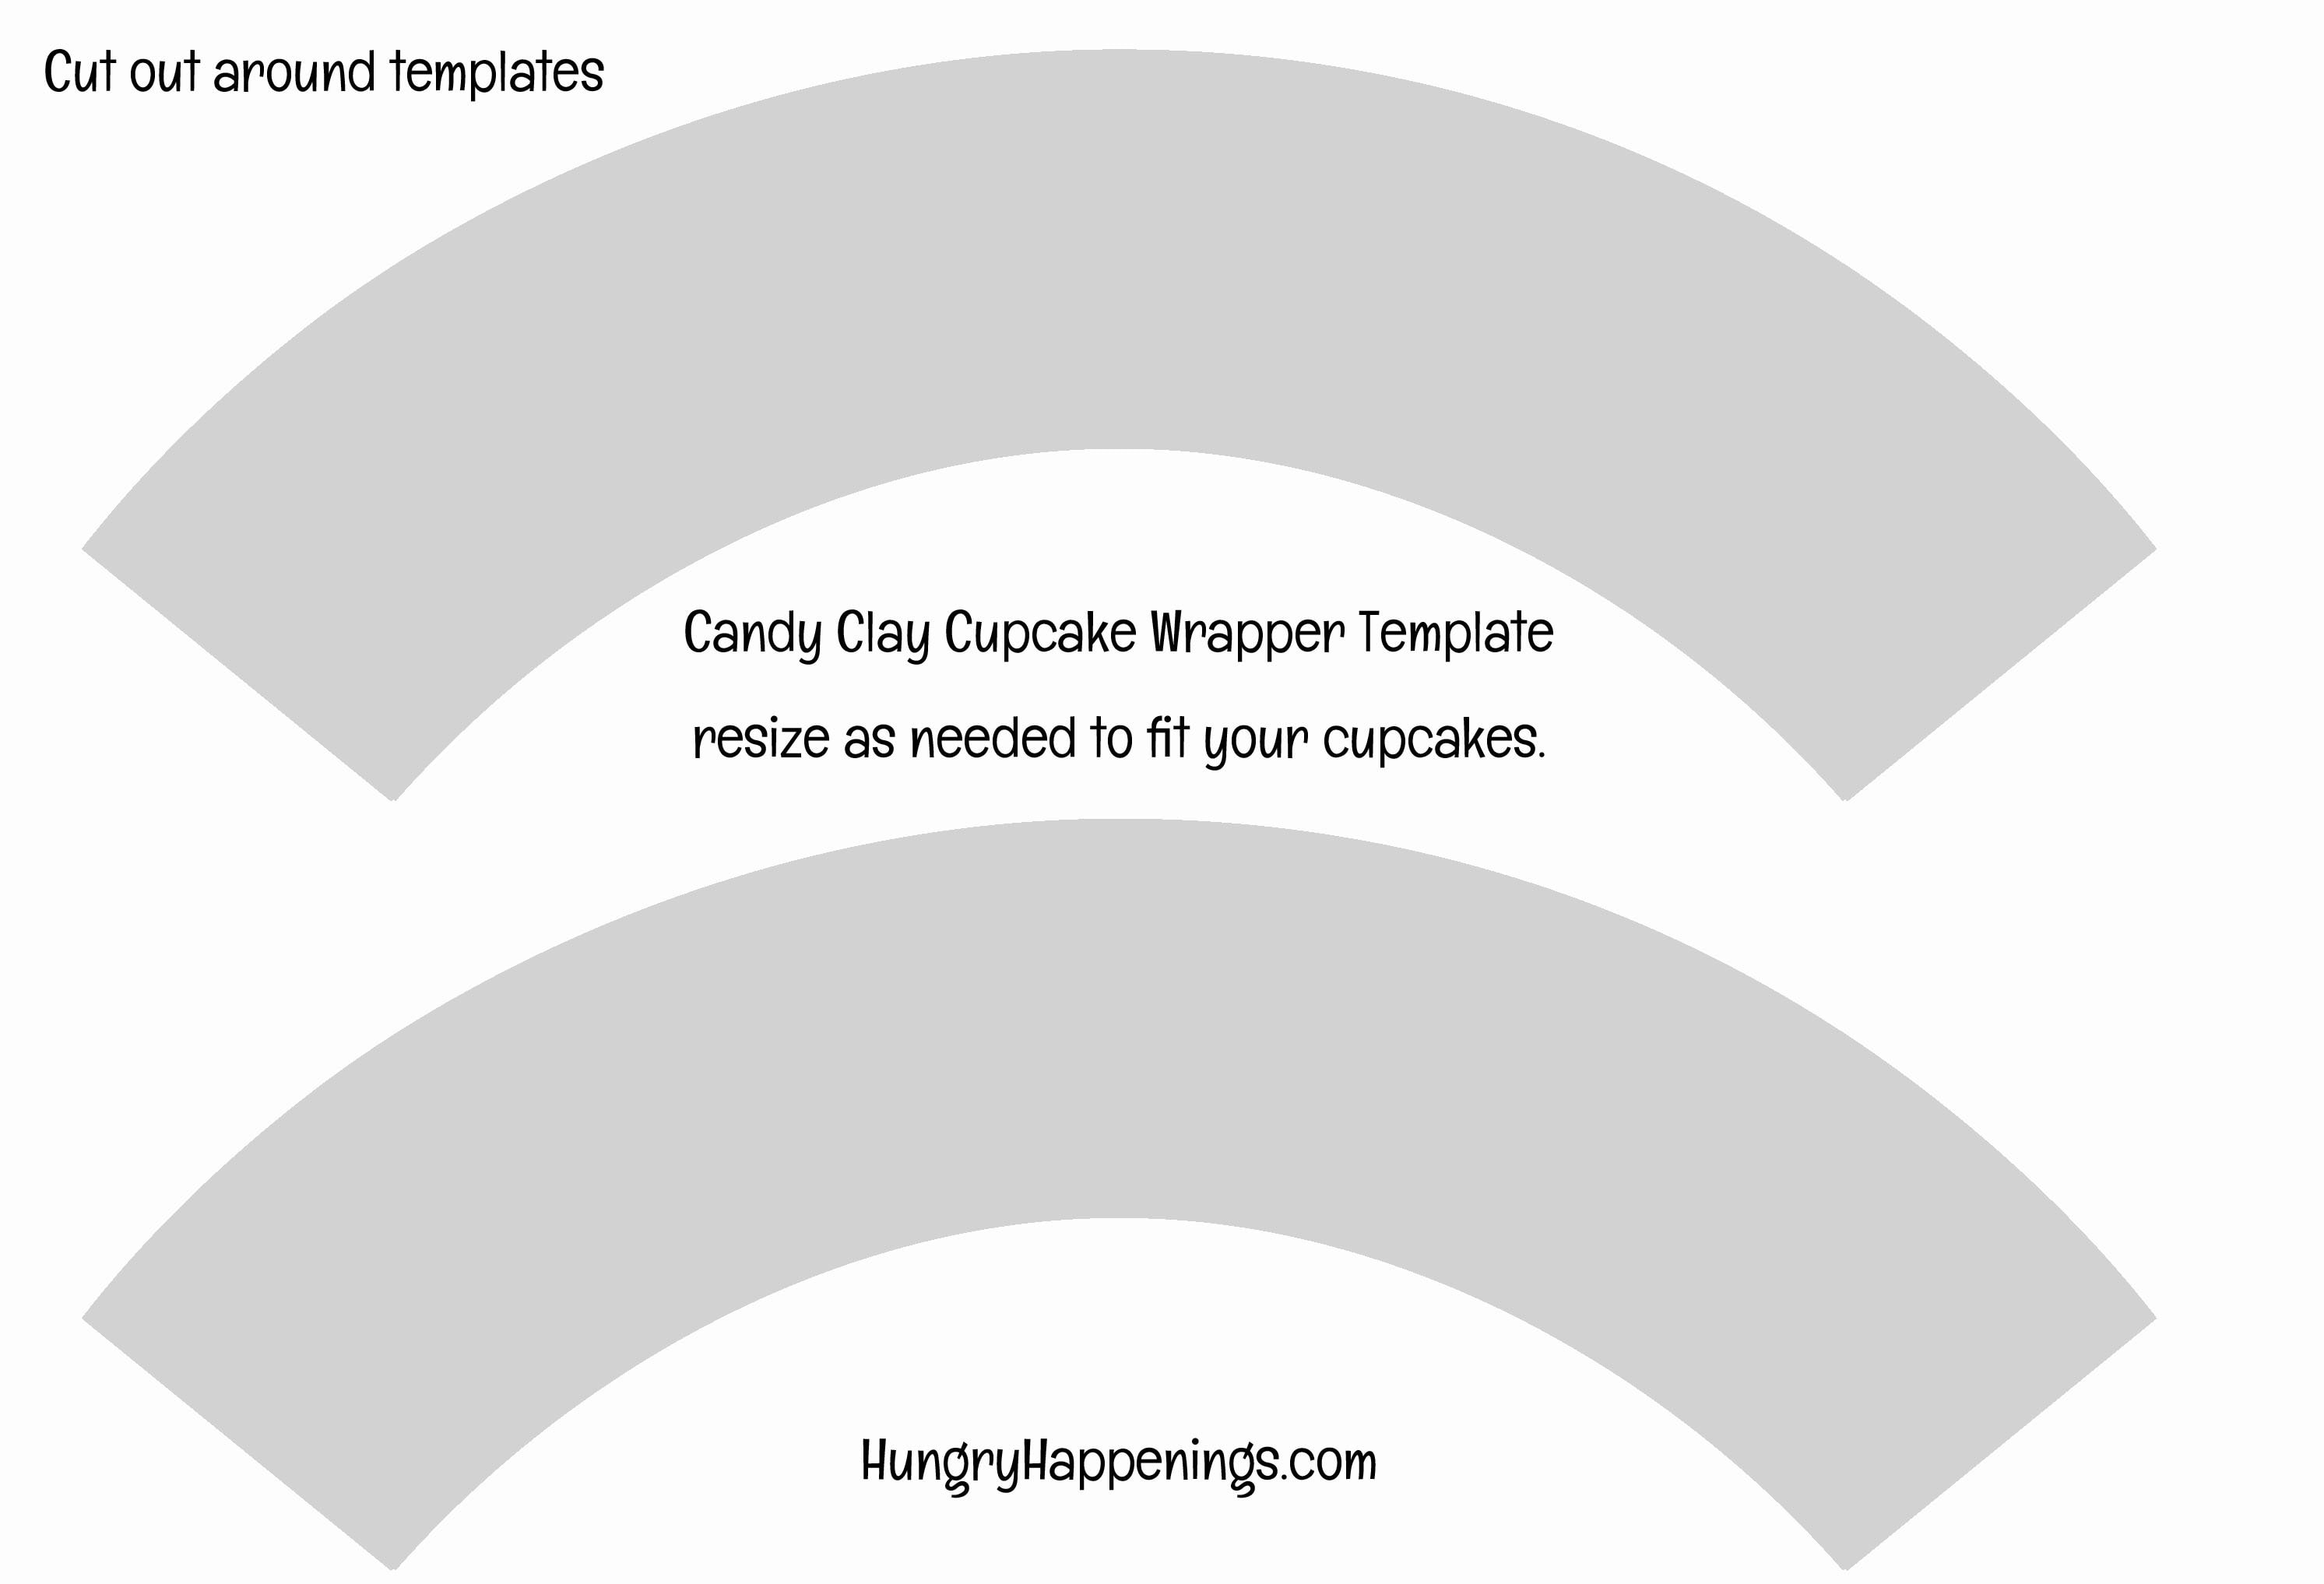 Print A Copy Of The Cupcake Wrer Template